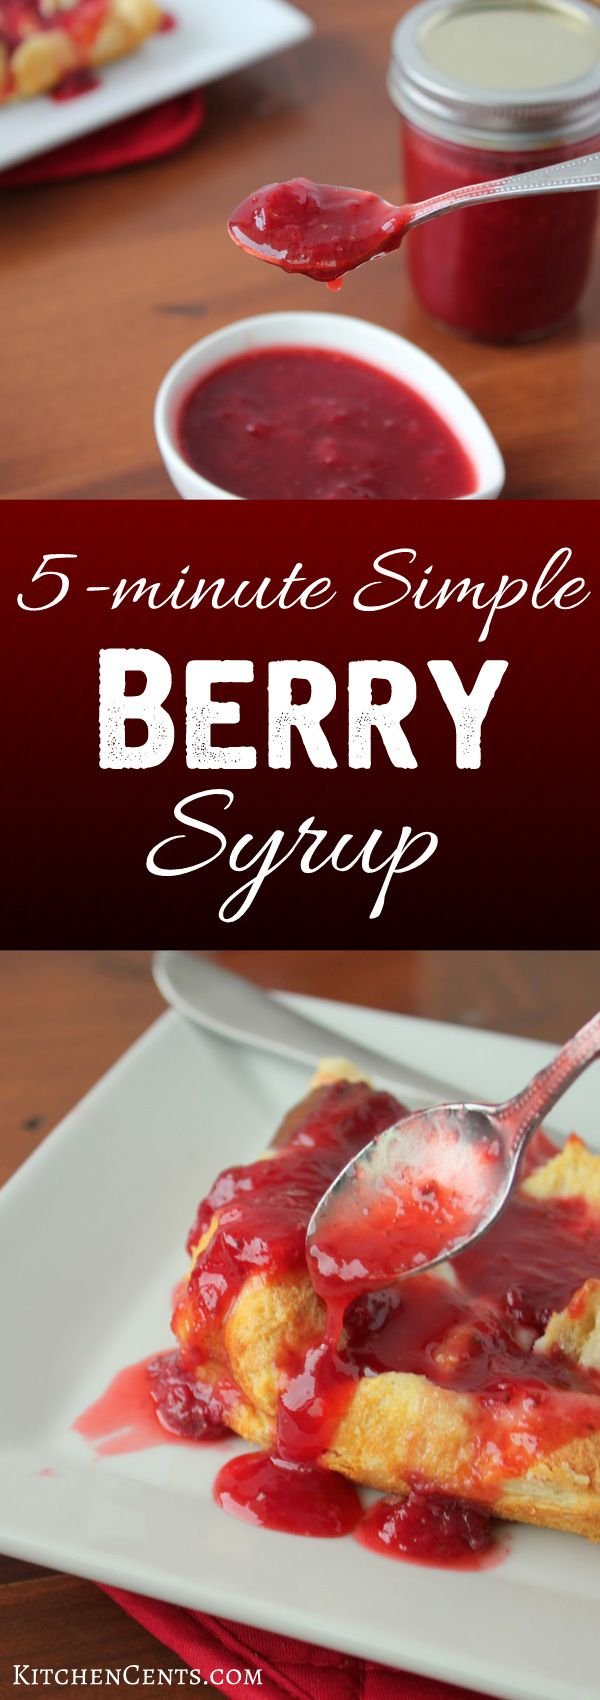 5-minute Simple Berry Syrup | KitchenCents.com This 5-minute Simple Berry Syrup adds beautiful color, delicious fruit flavor and a touch of sweetness. Add it to your breakfast or dessert for a sweet berry twist.